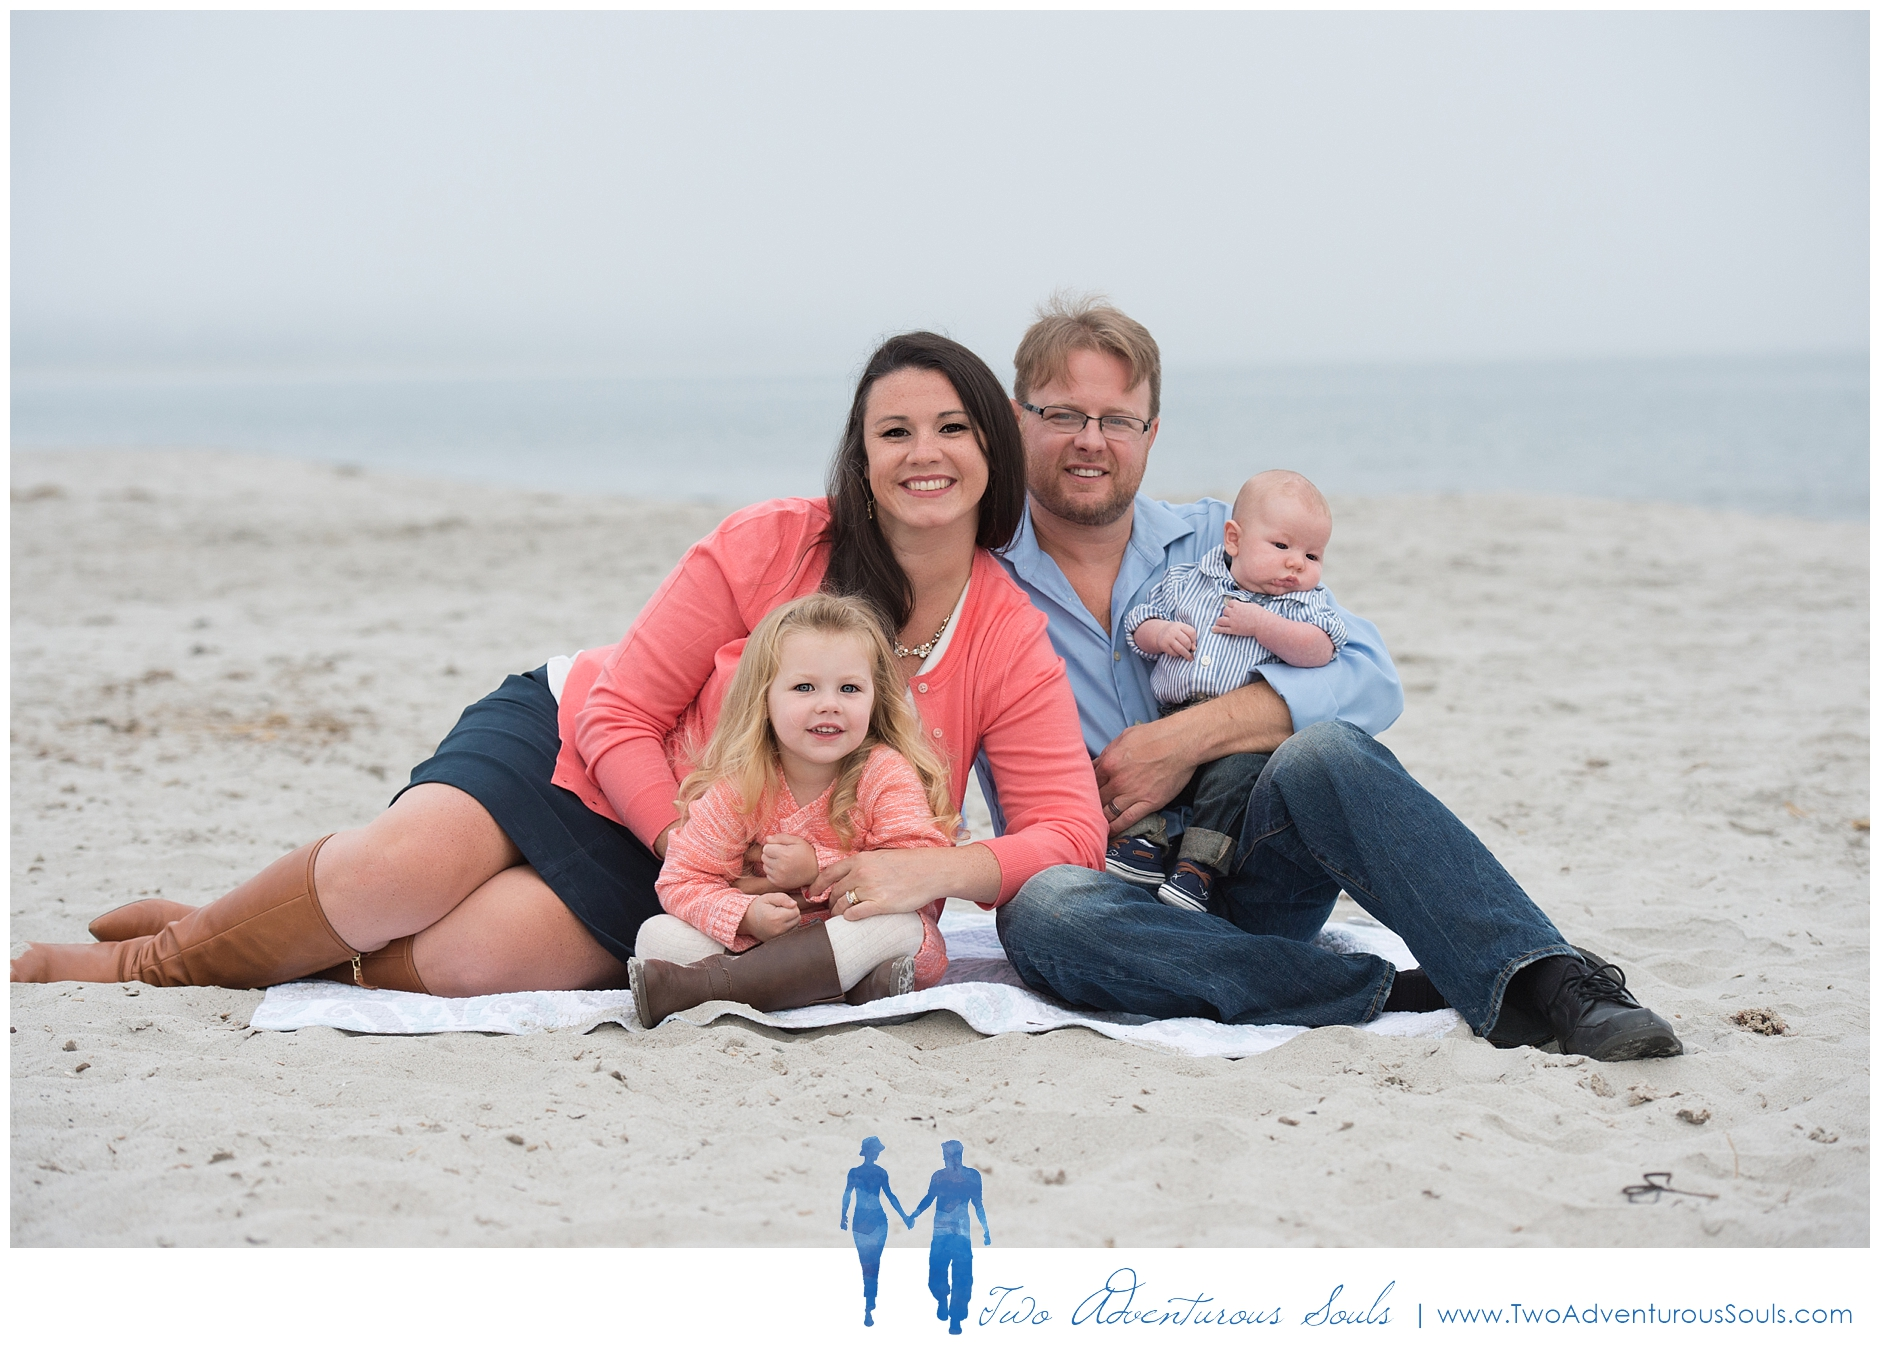 Pine Point Beach Family Portraits by Maine Family Photographer - Two Adventurous Souls -